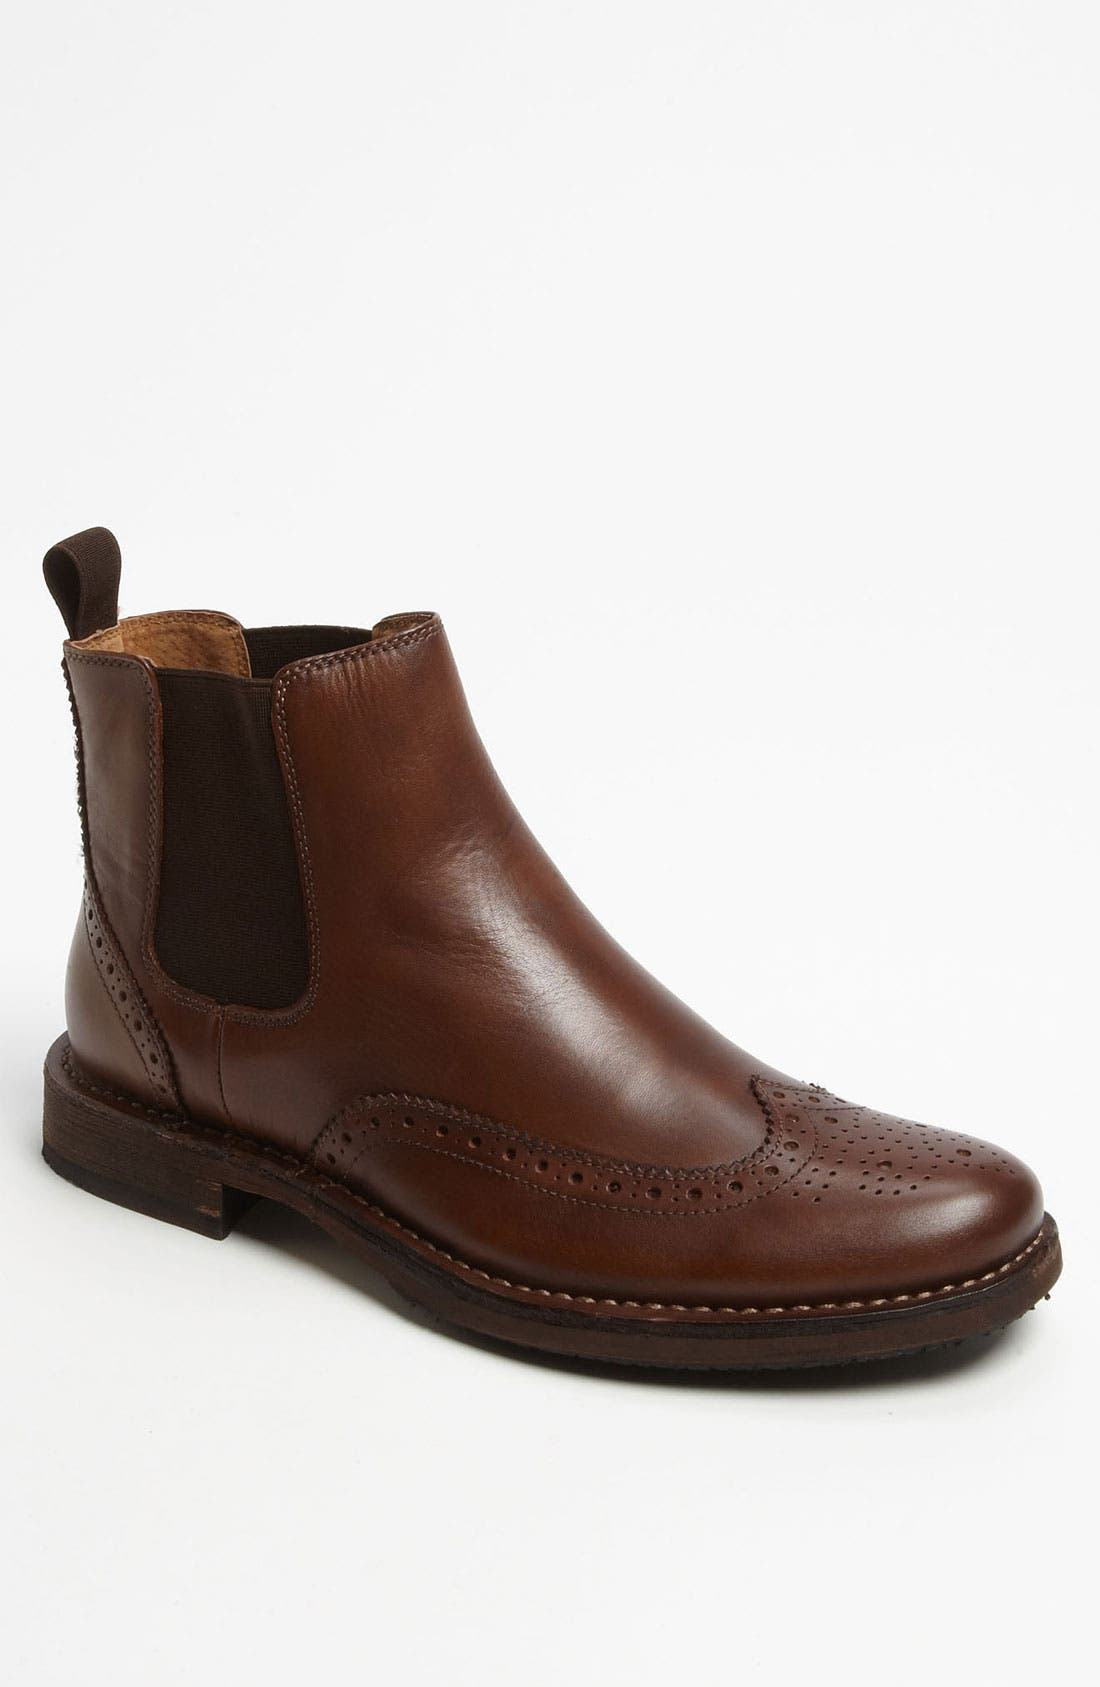 Alternate Image 1 Selected - Florsheim 'Cobblestone' Wingtip Chelsea Boot (Online Only)